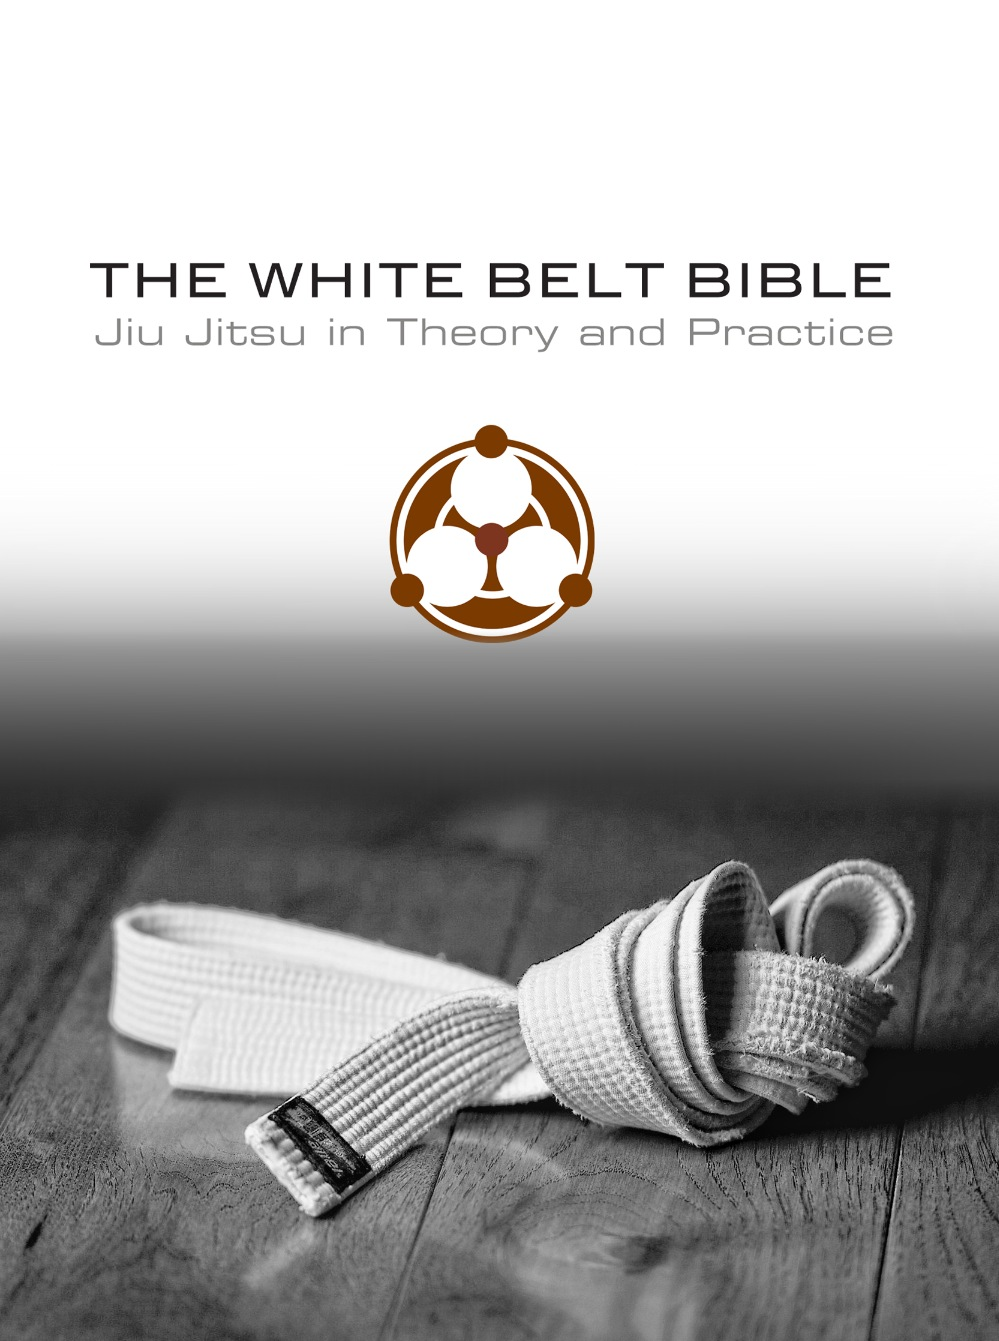 The White Belt Bible